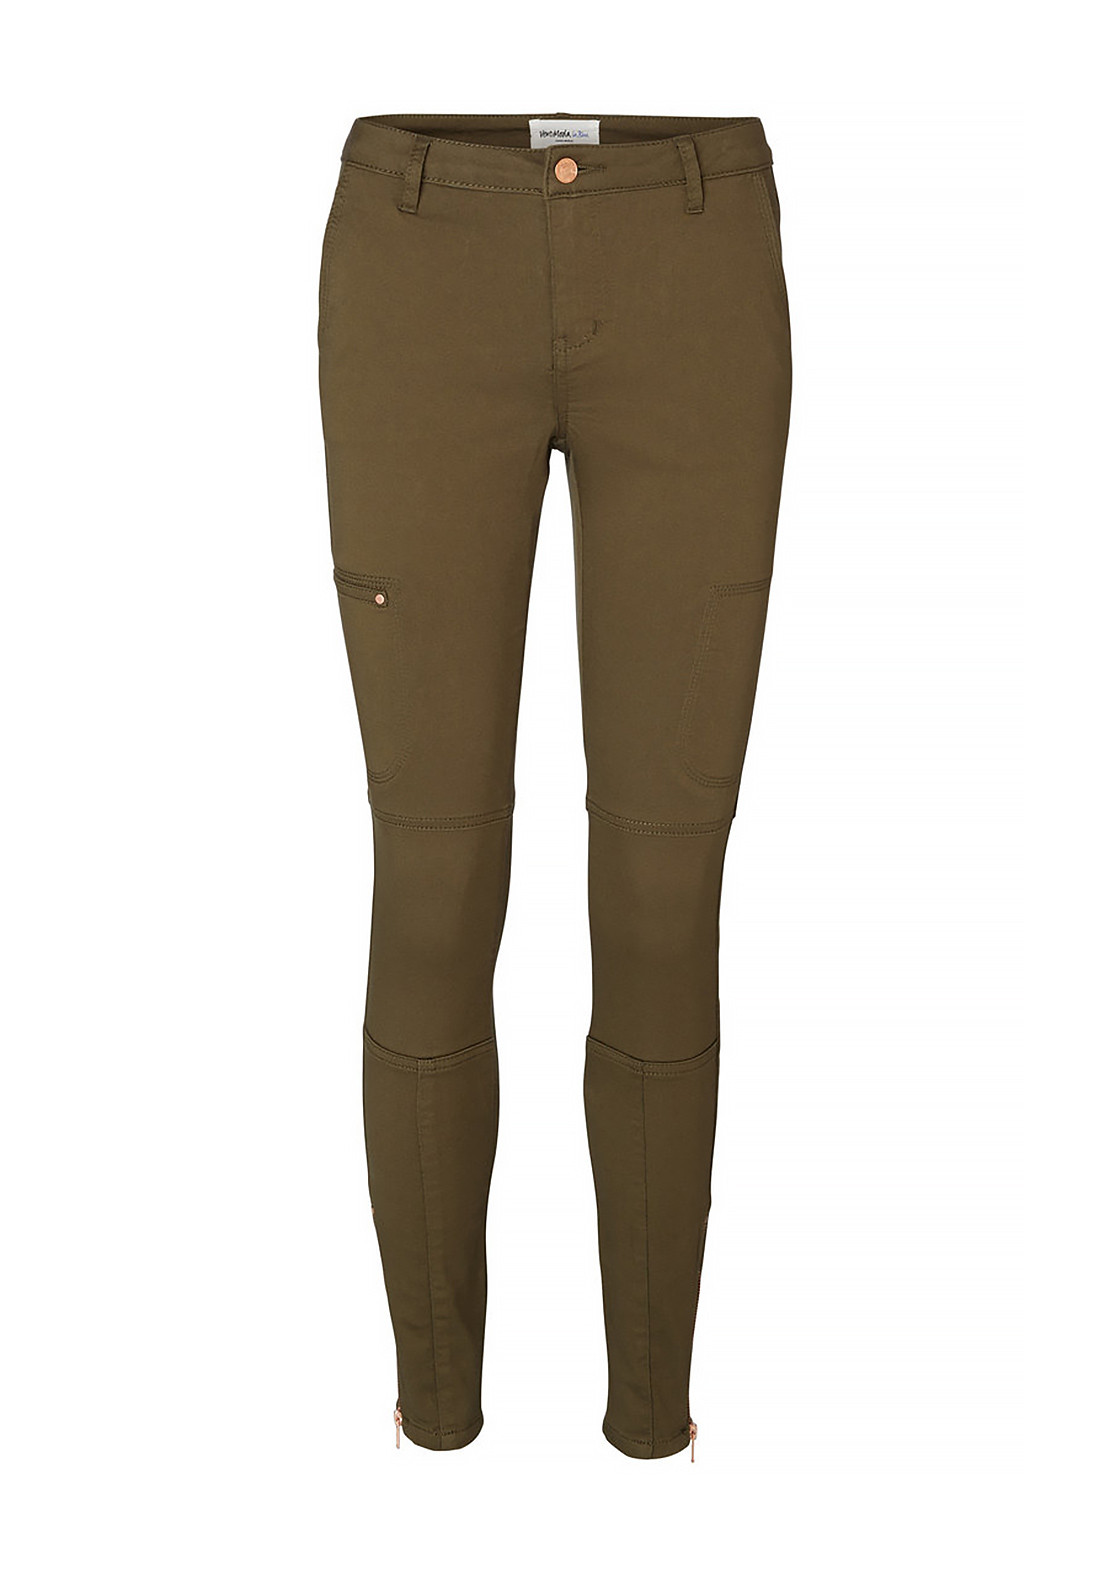 brand new 21aa1 6d897 Vero Moda Skinny Cargo Ankle Legging Trousers, Ivy Green